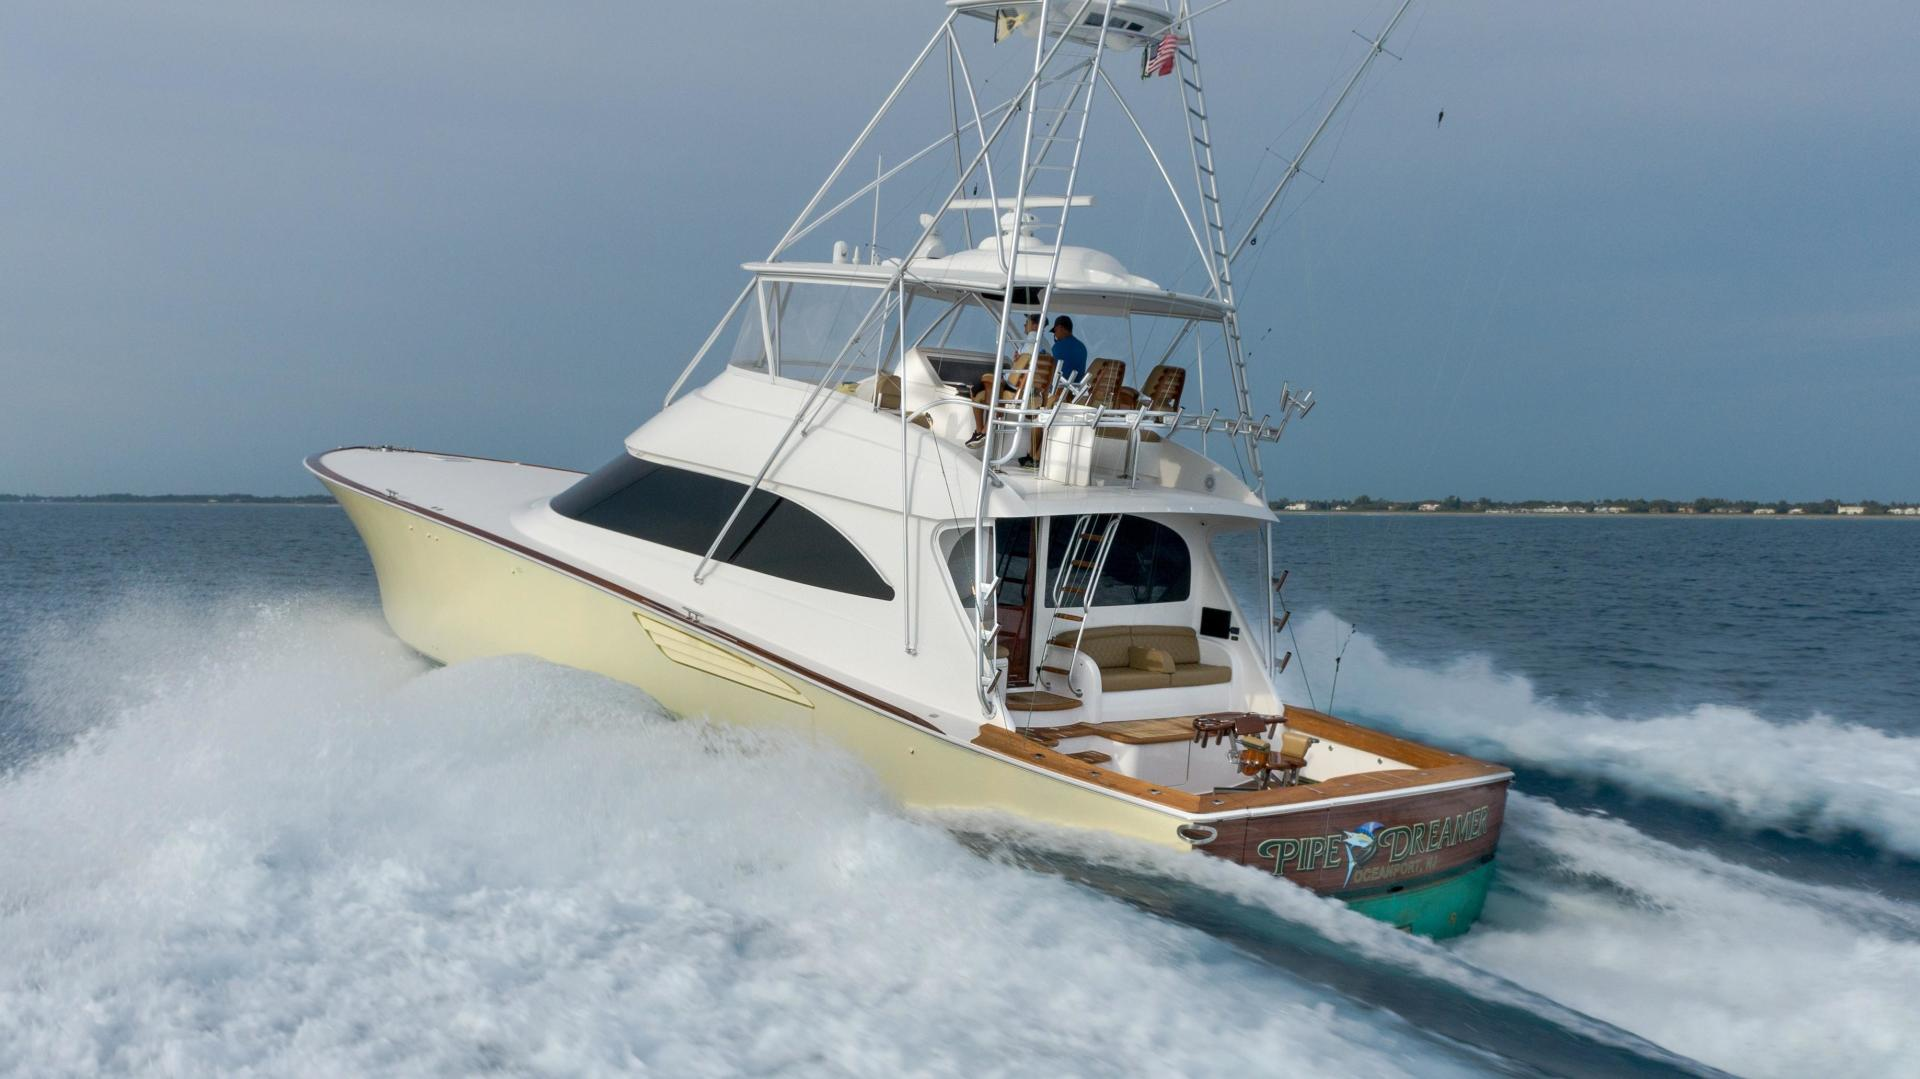 Viking-Sport Fish 2015-PIPE DREAMER Brielle-New Jersey-United States-1473180 | Thumbnail